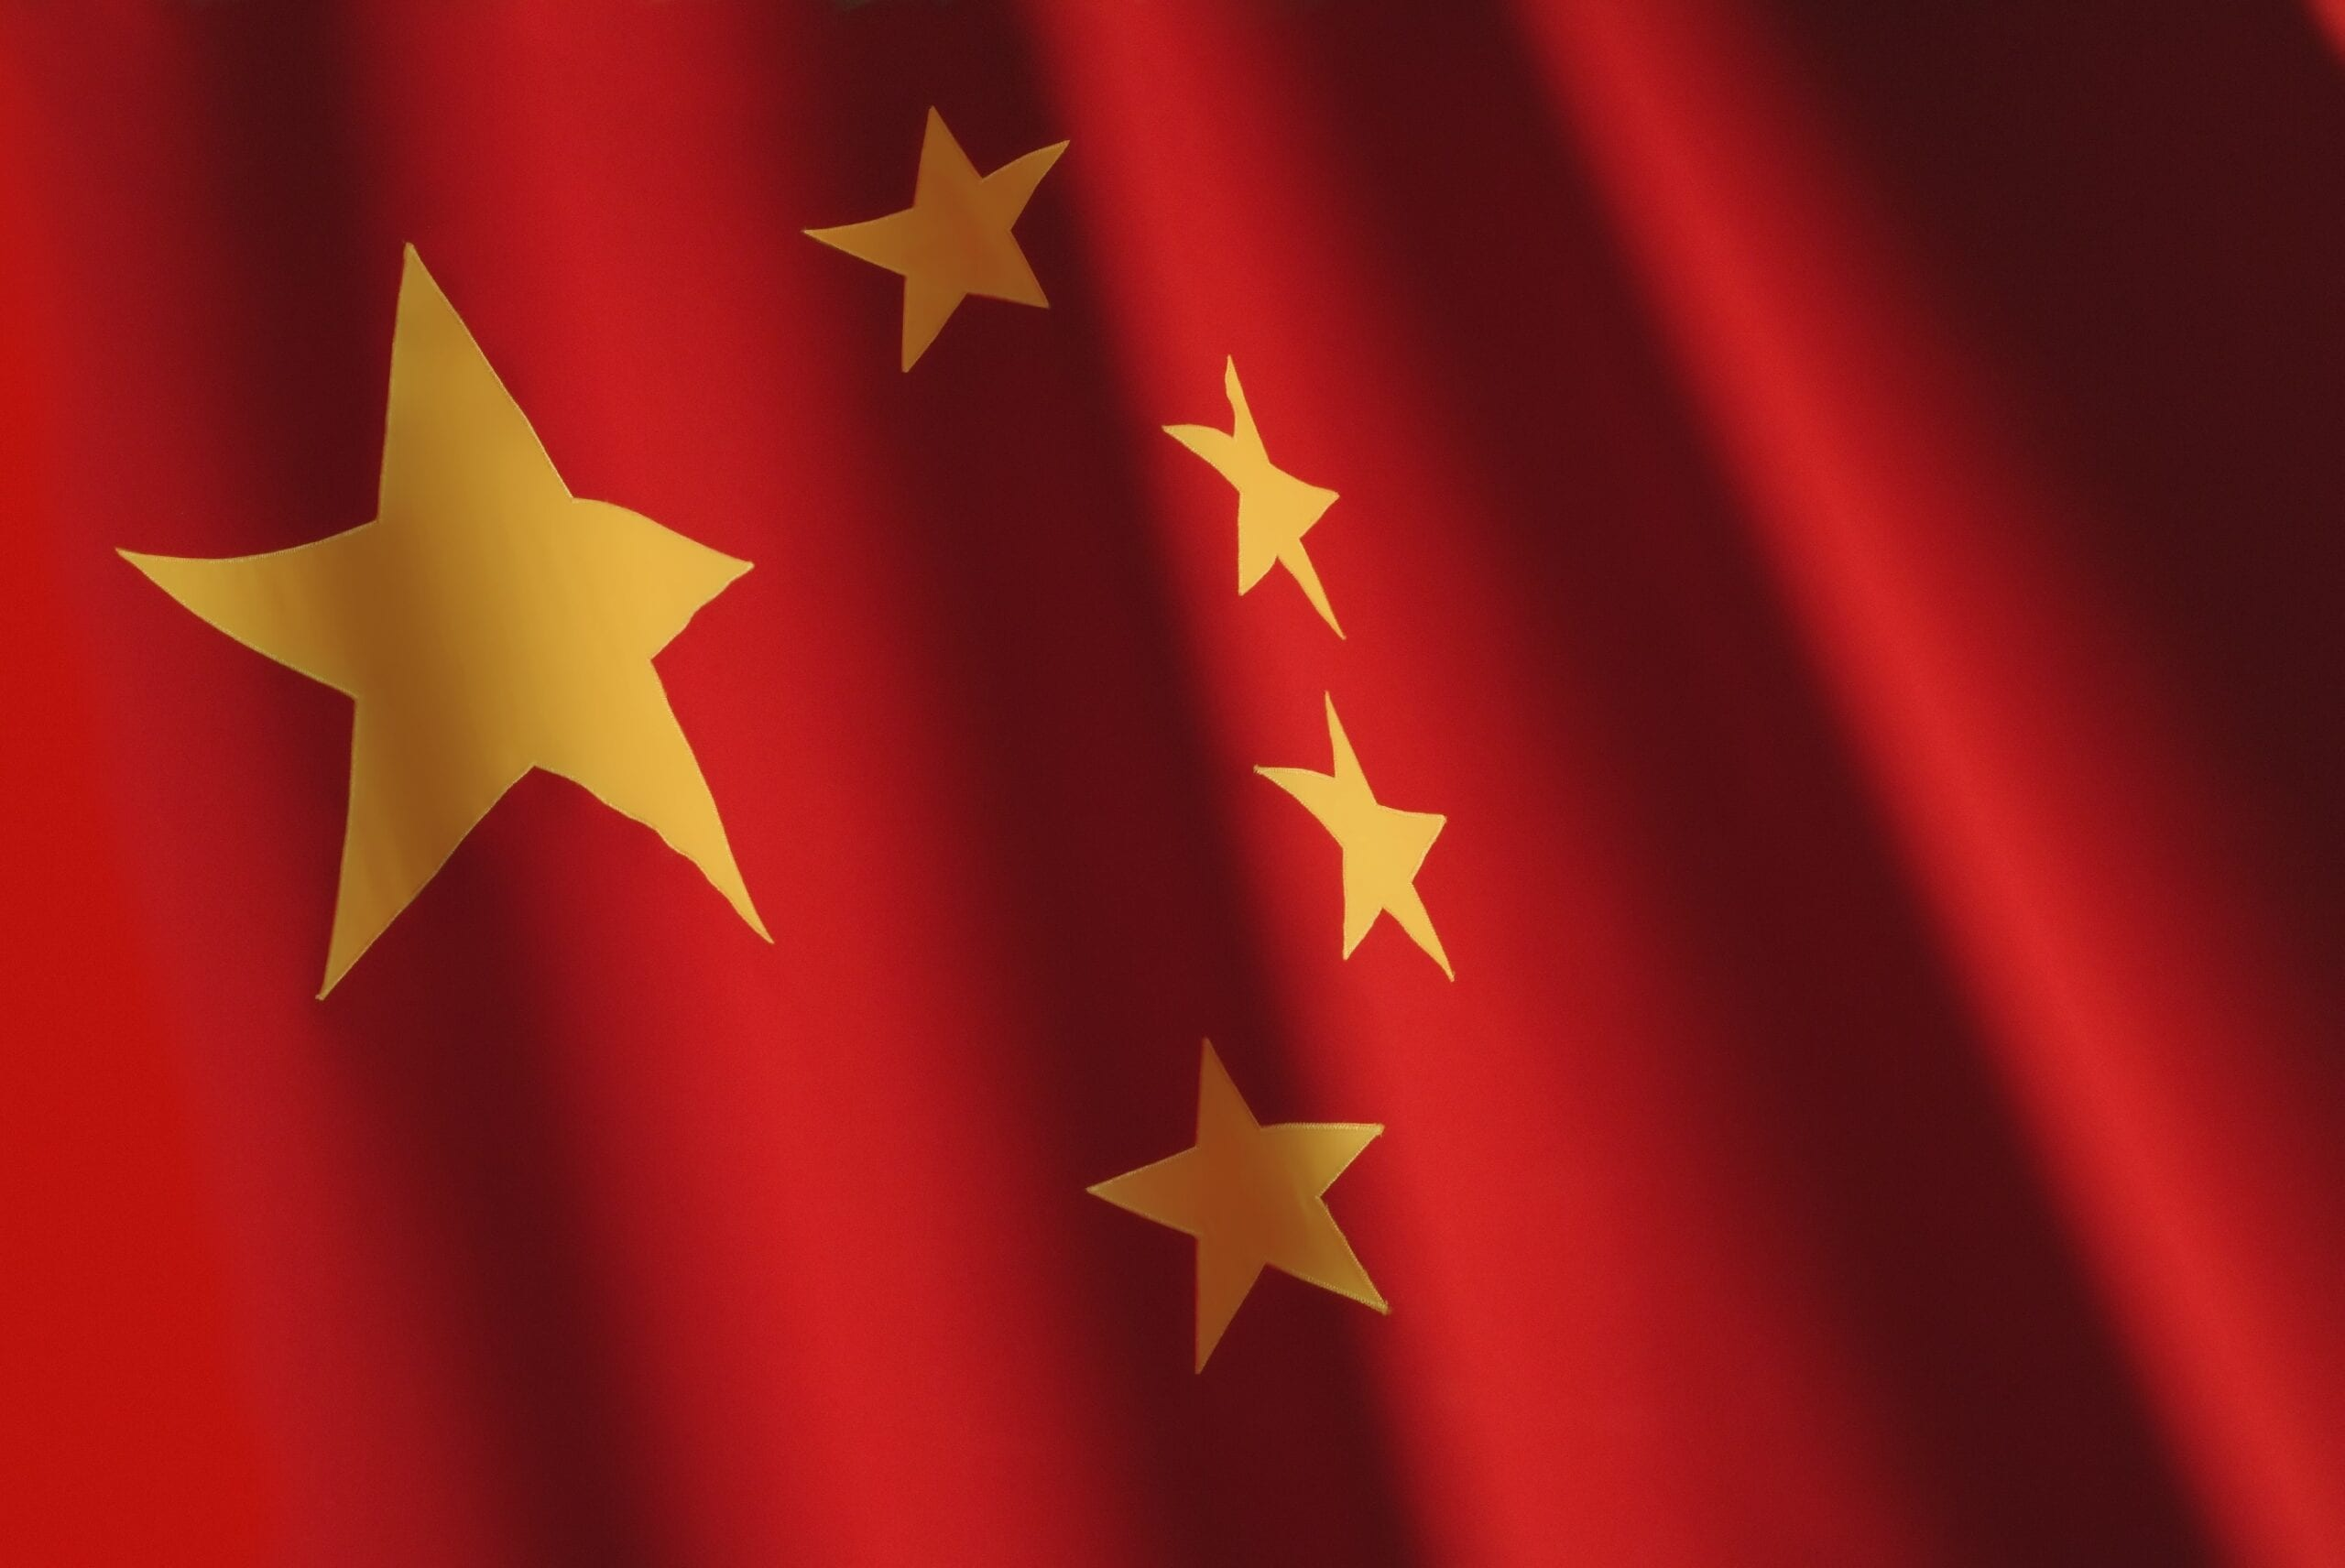 What Do The Stars On China S Flag Mean